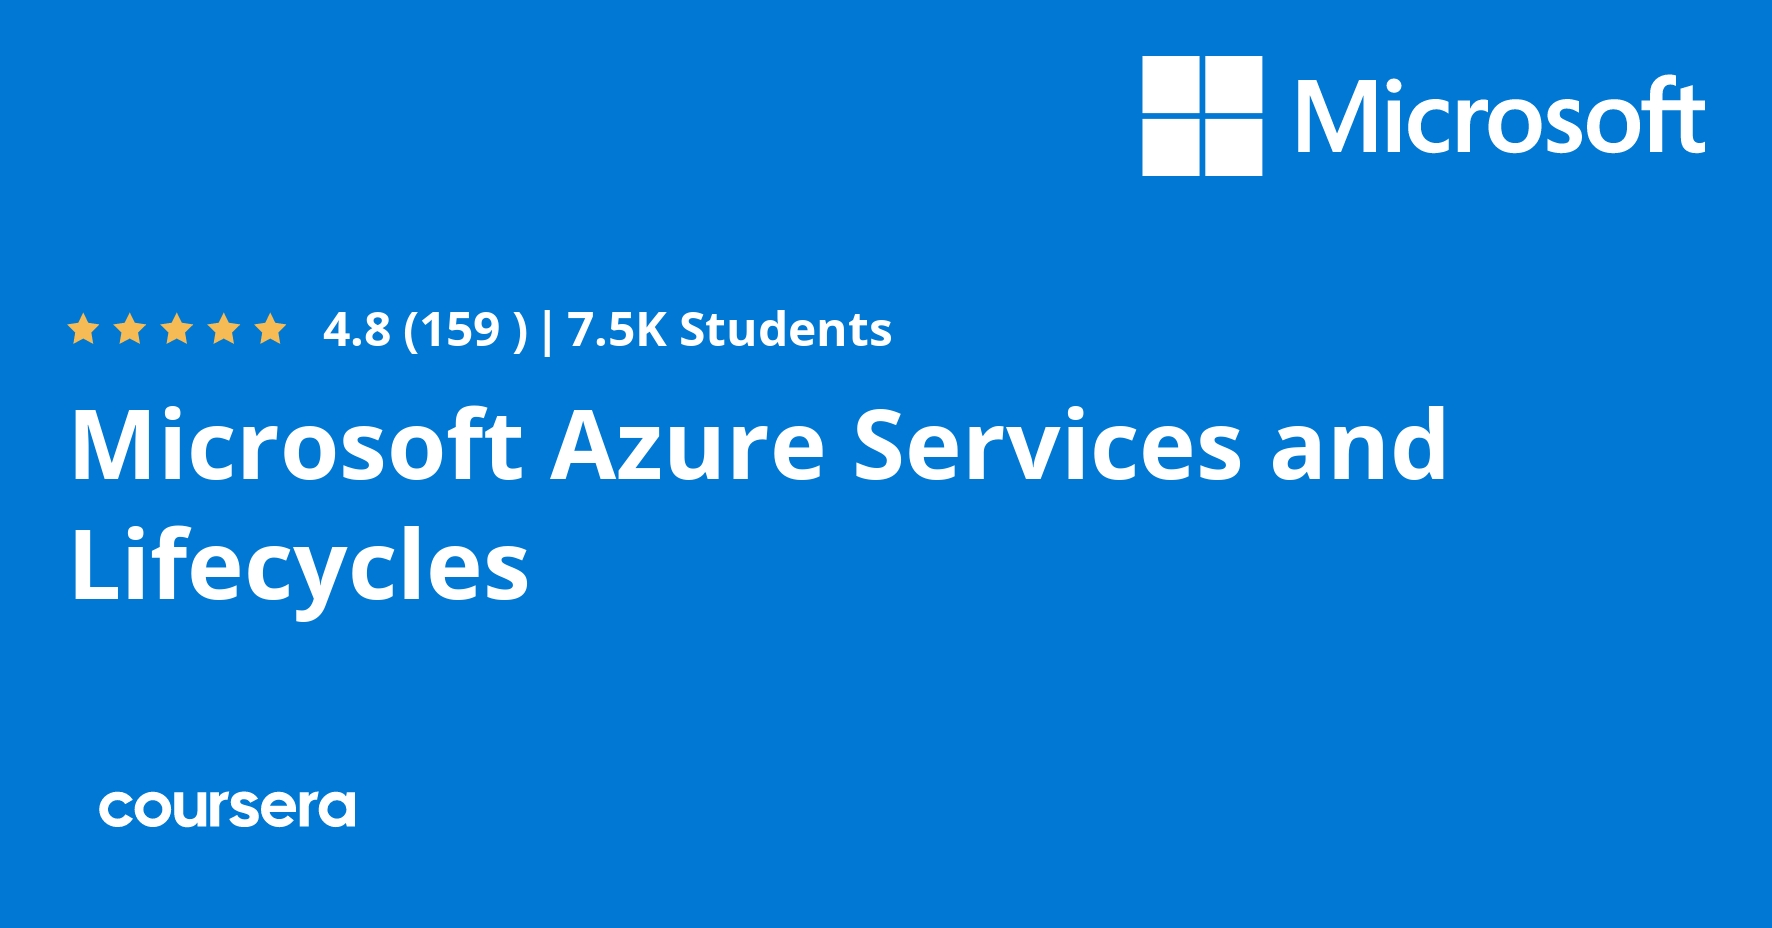 free online courses for https://s3.amazonaws.com/coursera_assets/meta_images/generated/XDP/XDP~COURSE!~microsoft-azure-services-lifecycles/XDP~COURSE!~microsoft-azure-services-lifecycles.jpeg